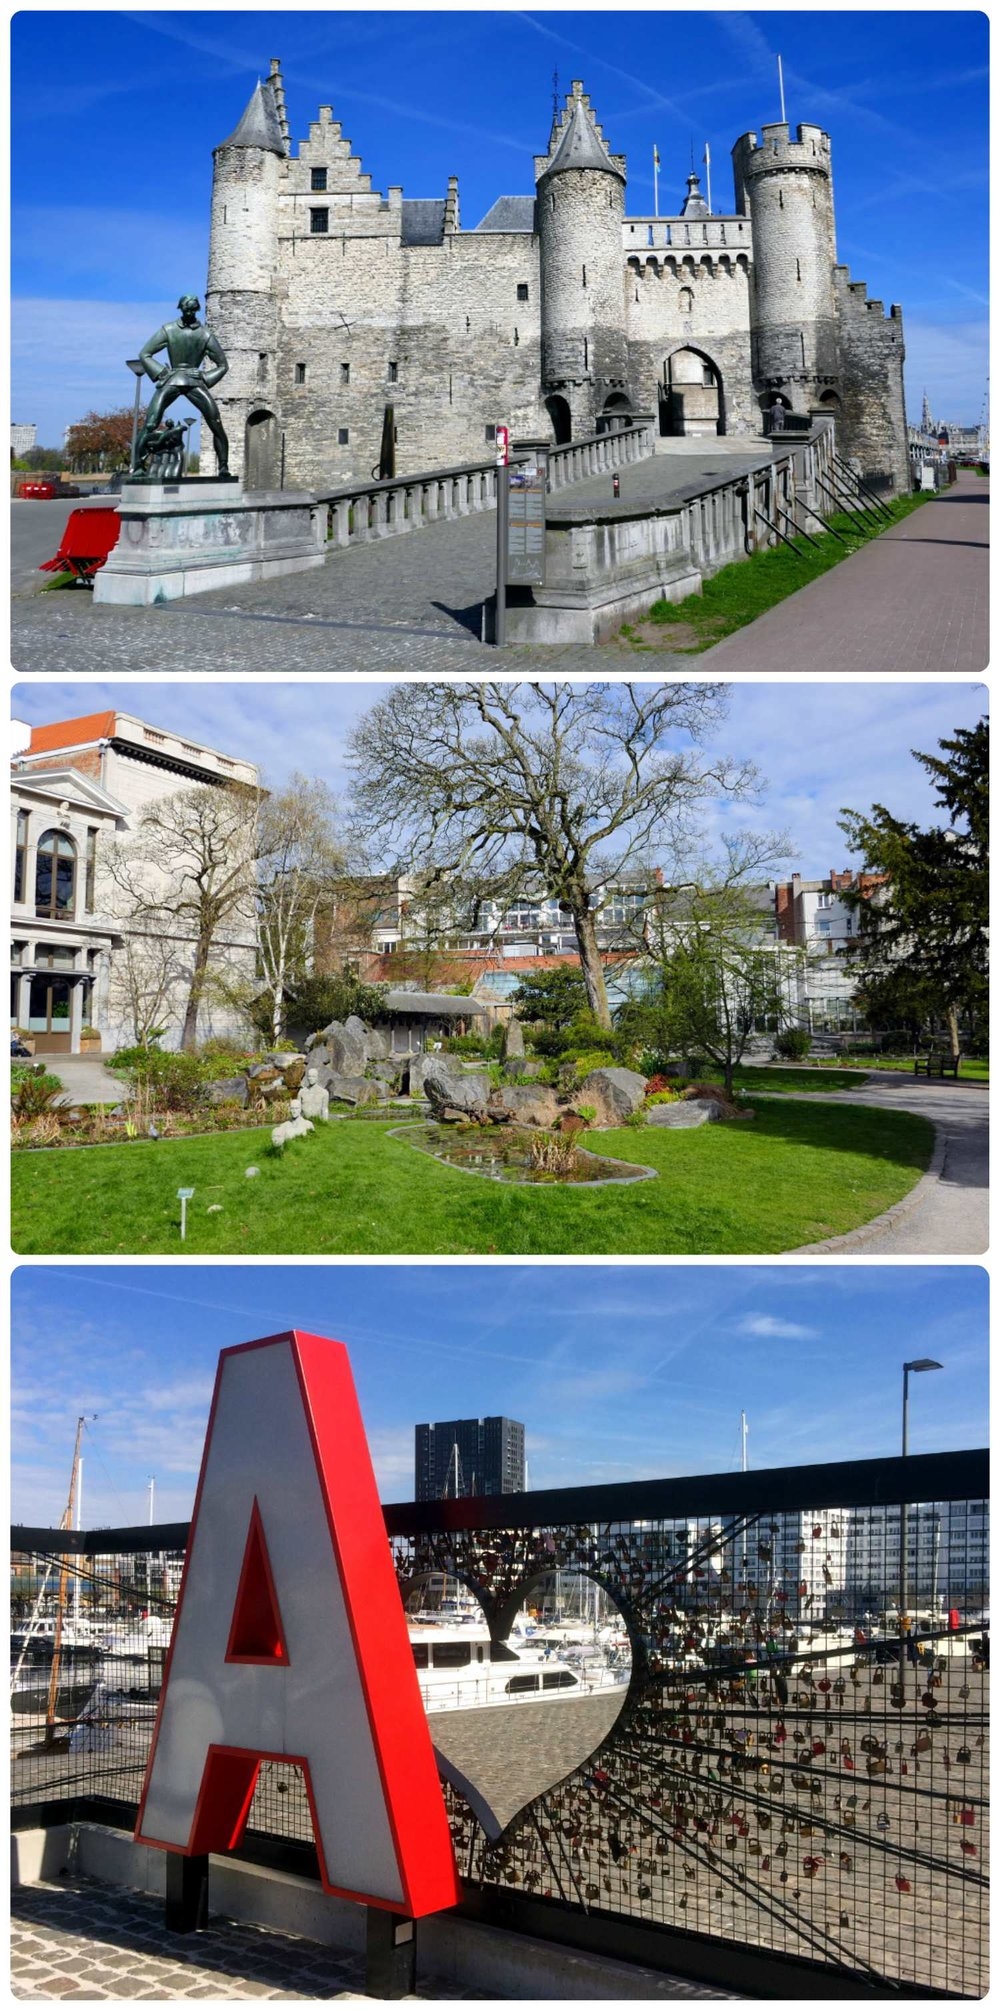 Antwerp, Belgium. Top to bottom: Steen Castle, Botanical Garden, Antwerp sign at Willemdok.